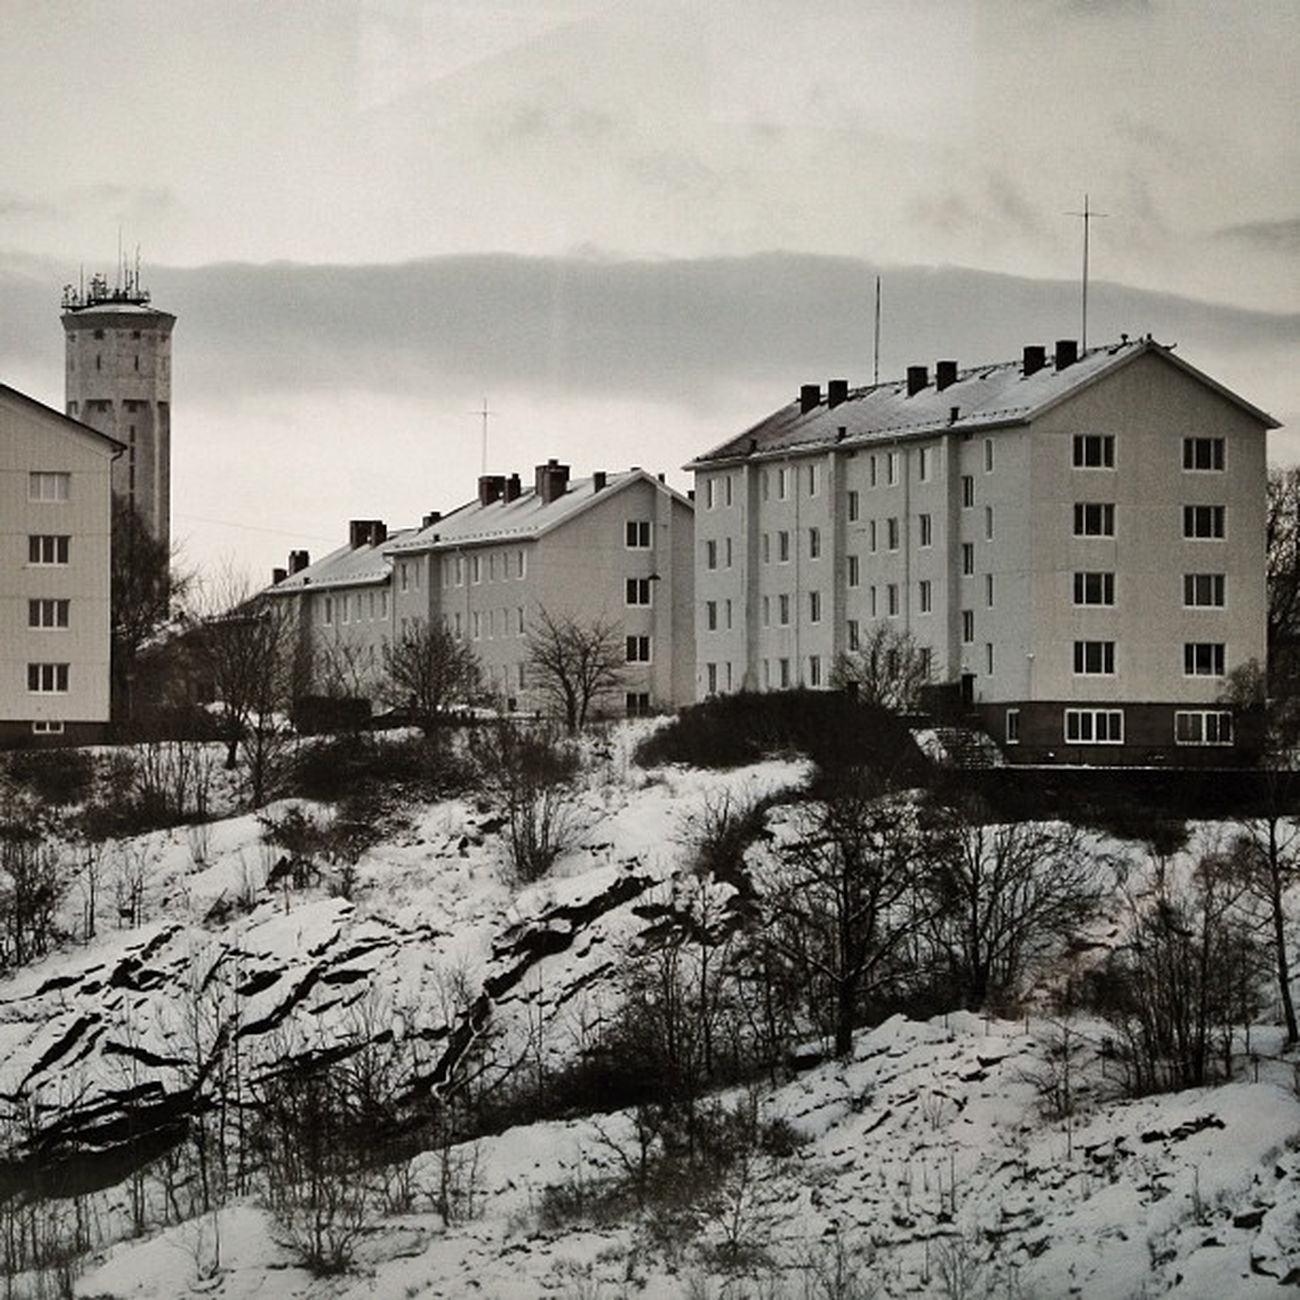 The home of mellbergstedt as seen from my desk at work. Snö  Sverige Trees Nevado Winter Ig_sweden Snow Igersgothenburg Flats Gothenburg Sweden Invierno Goteborg Watertower Hill Homes Nieve Apartments Monochromatic